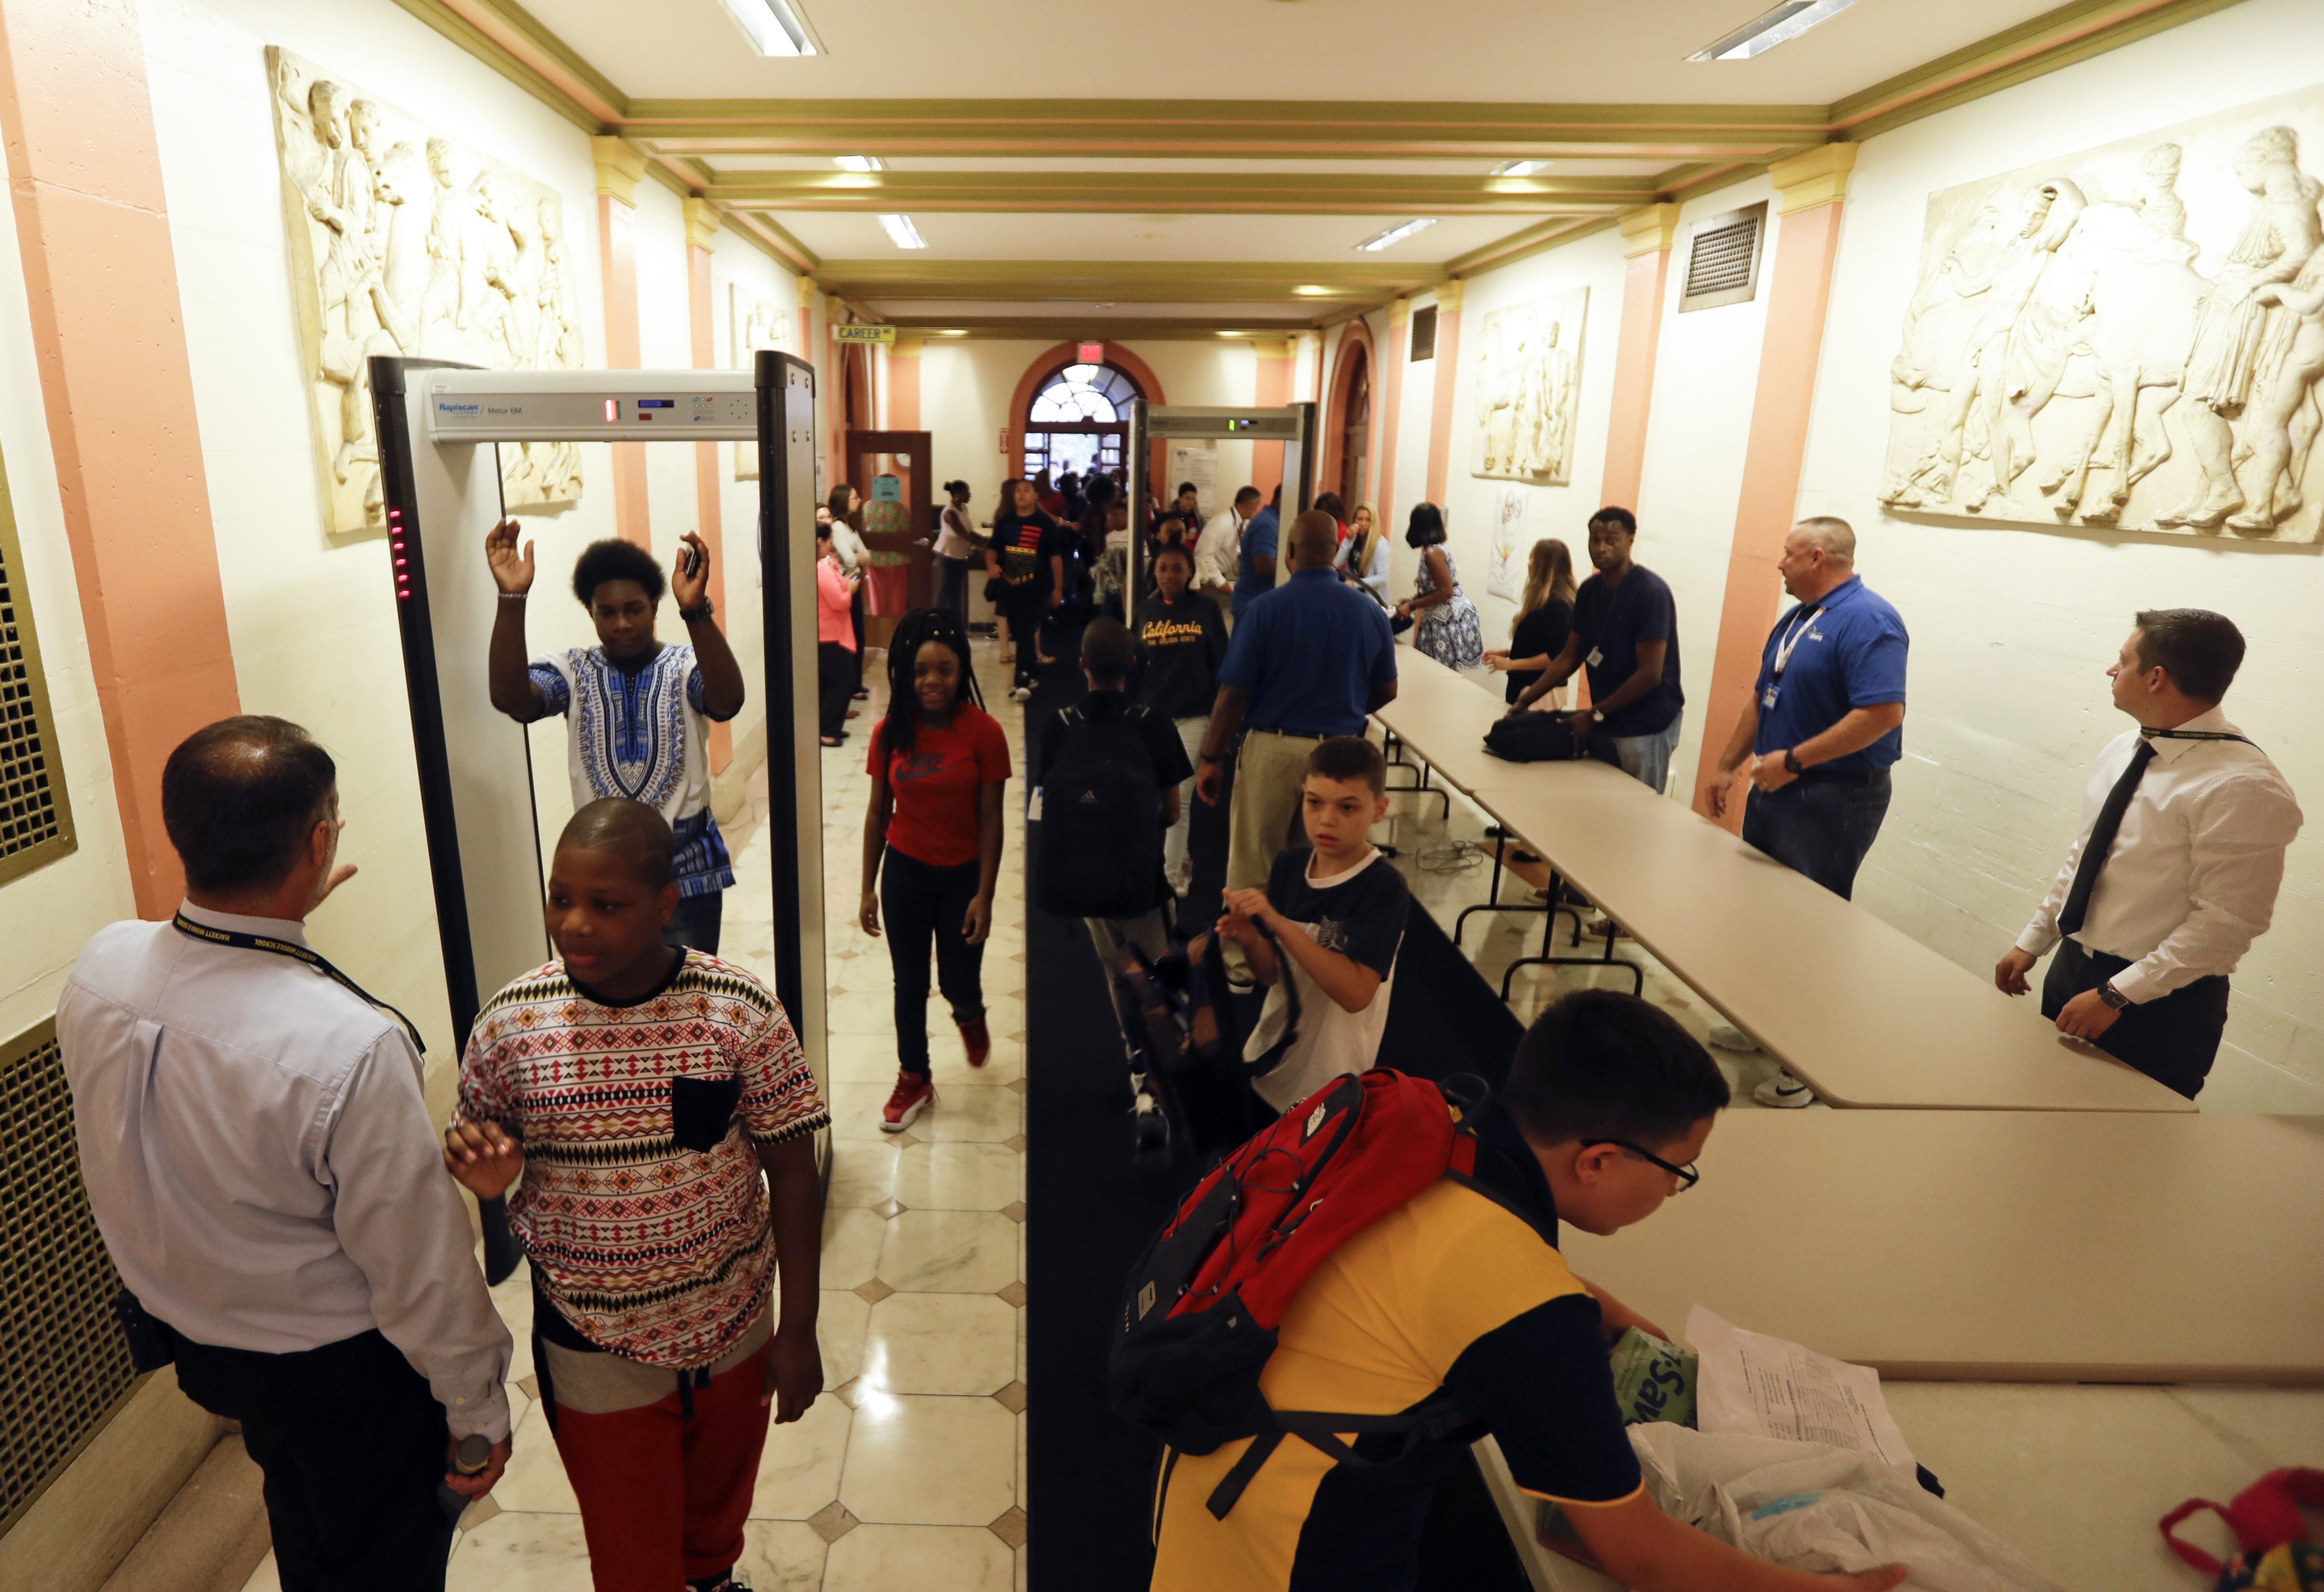 <p>Students at William Hackett Middle School pass through metal detectors on the first day of school on Tuesday, Sept. 6, 2016, in Albany, N.Y. Schools in Colorado are considering similar security measures for the 2018-19 school year.</p>  <p></p>